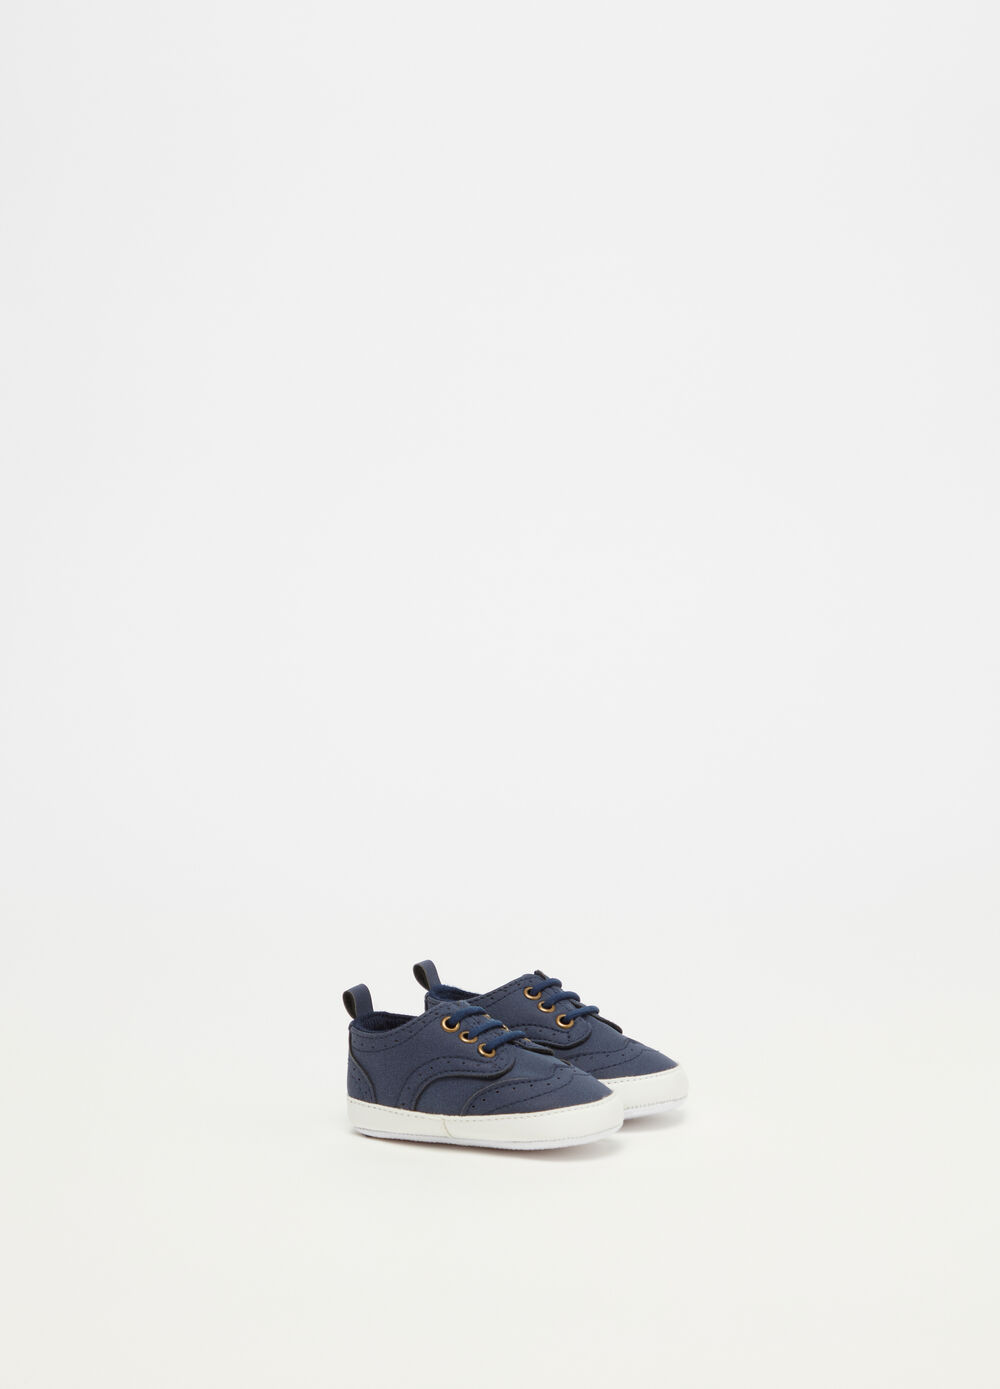 Baby shoes with contrasting stitching